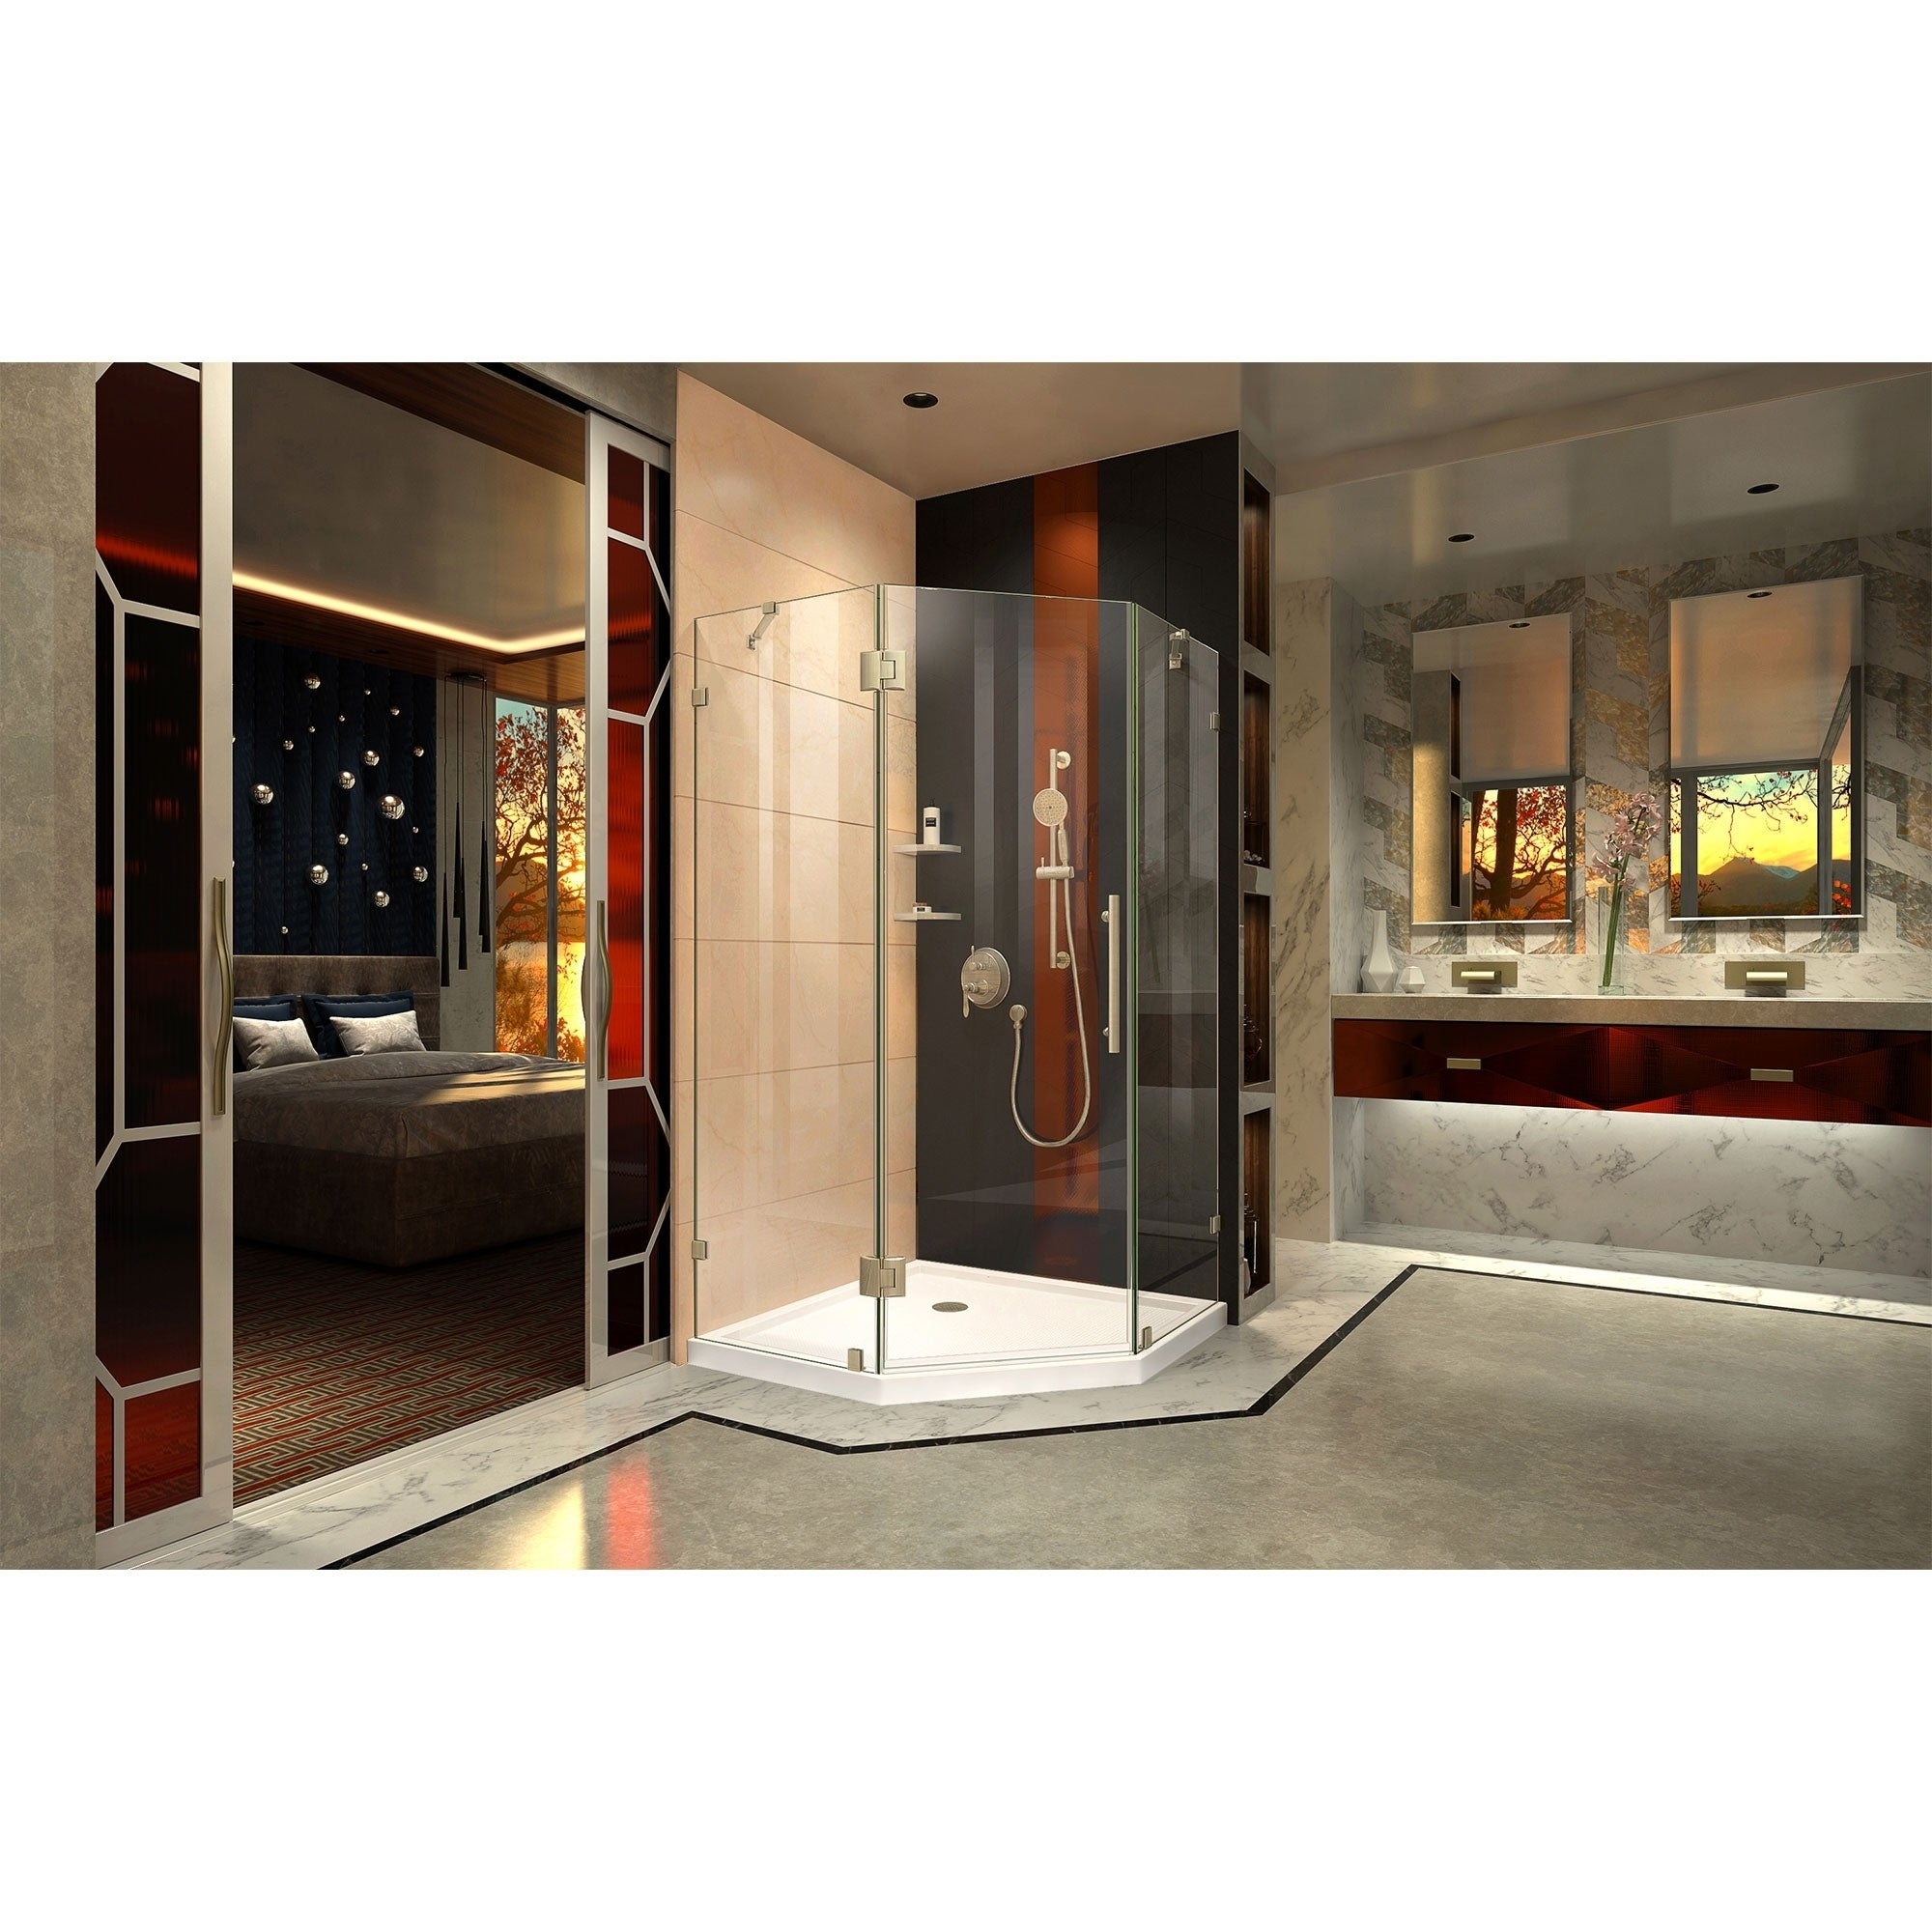 Shop DreamLine Prism Lux 34 5/16 in. by 34 5/16 in. Frameless Hinged ...